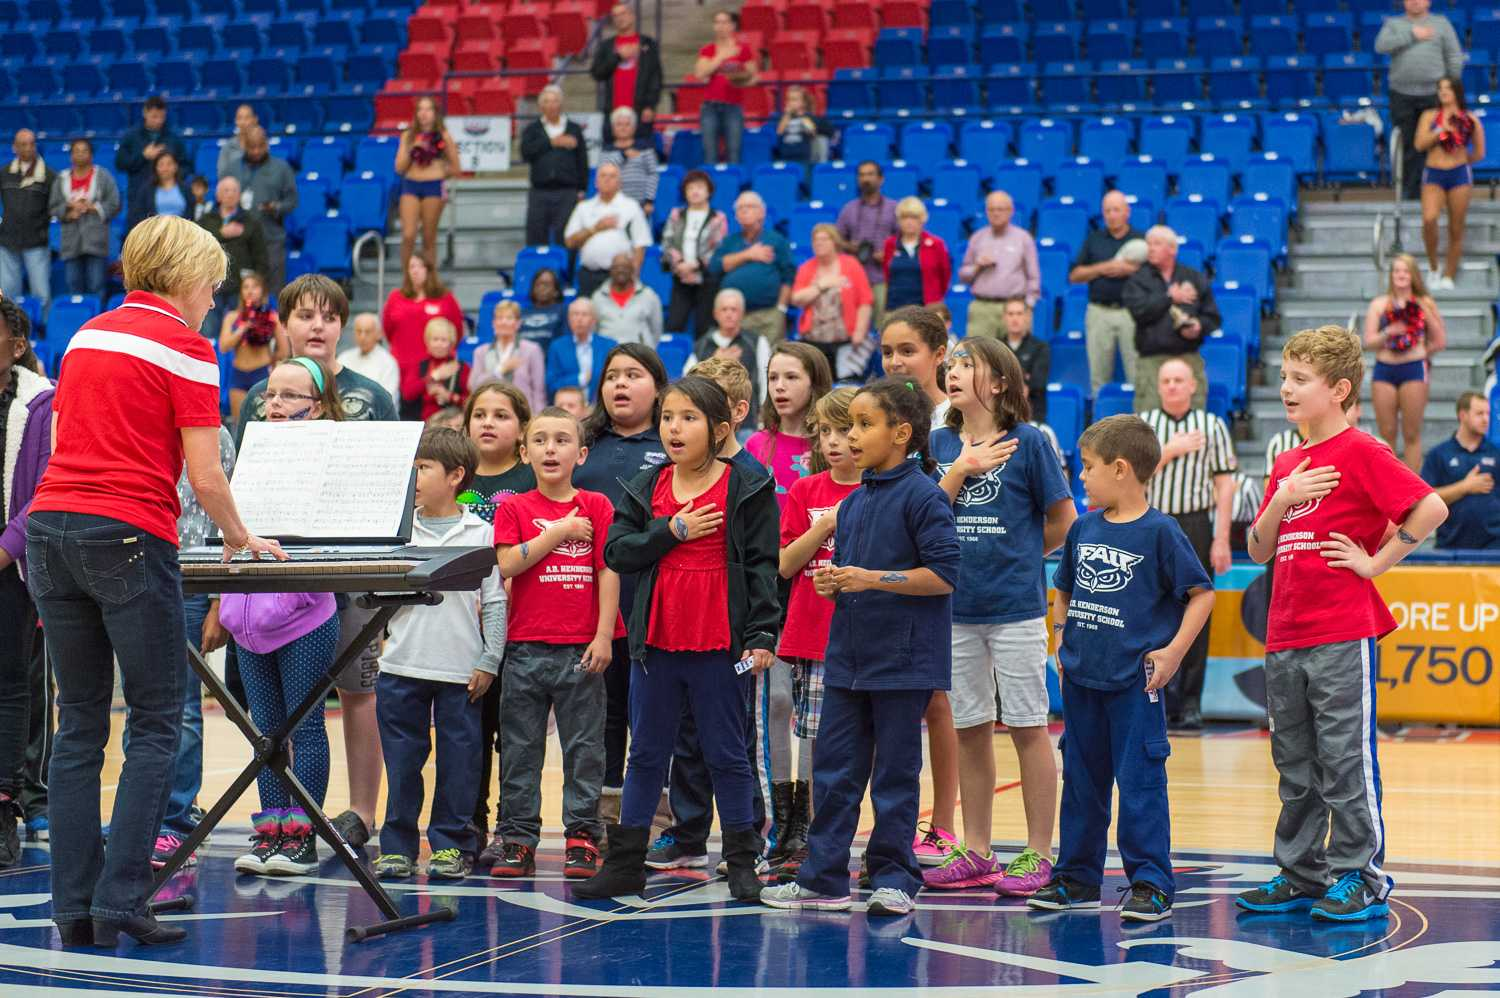 Students from A.D Henderson Elementary School sing the National Anthem prior to the start of FAU Women's Basketballs game against the Charlotte 49ers.